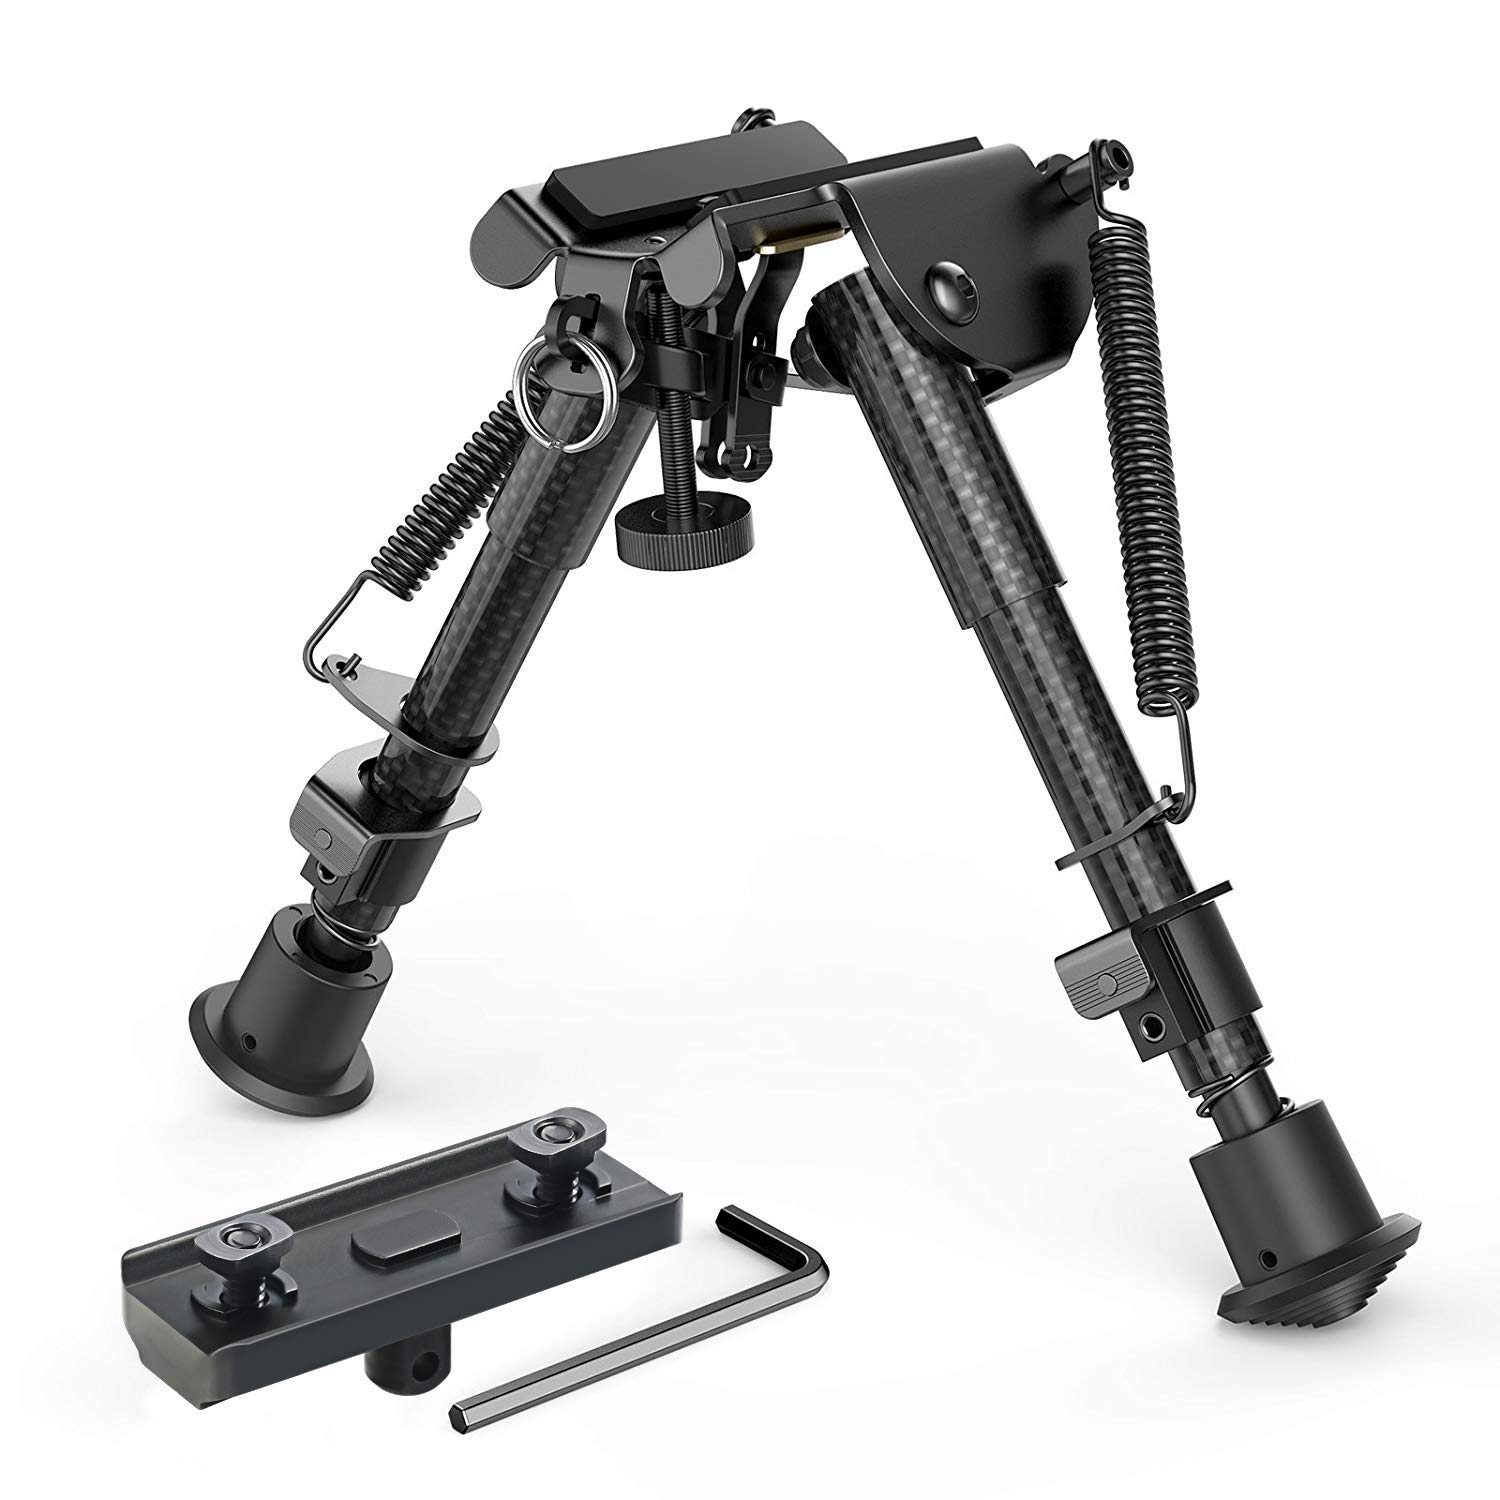 XAegis Carbon Fiber 6''- 9'' Rifle Bipod with M-lok Adapter for Hunting & Shooting Carbon Bipod by XAegis